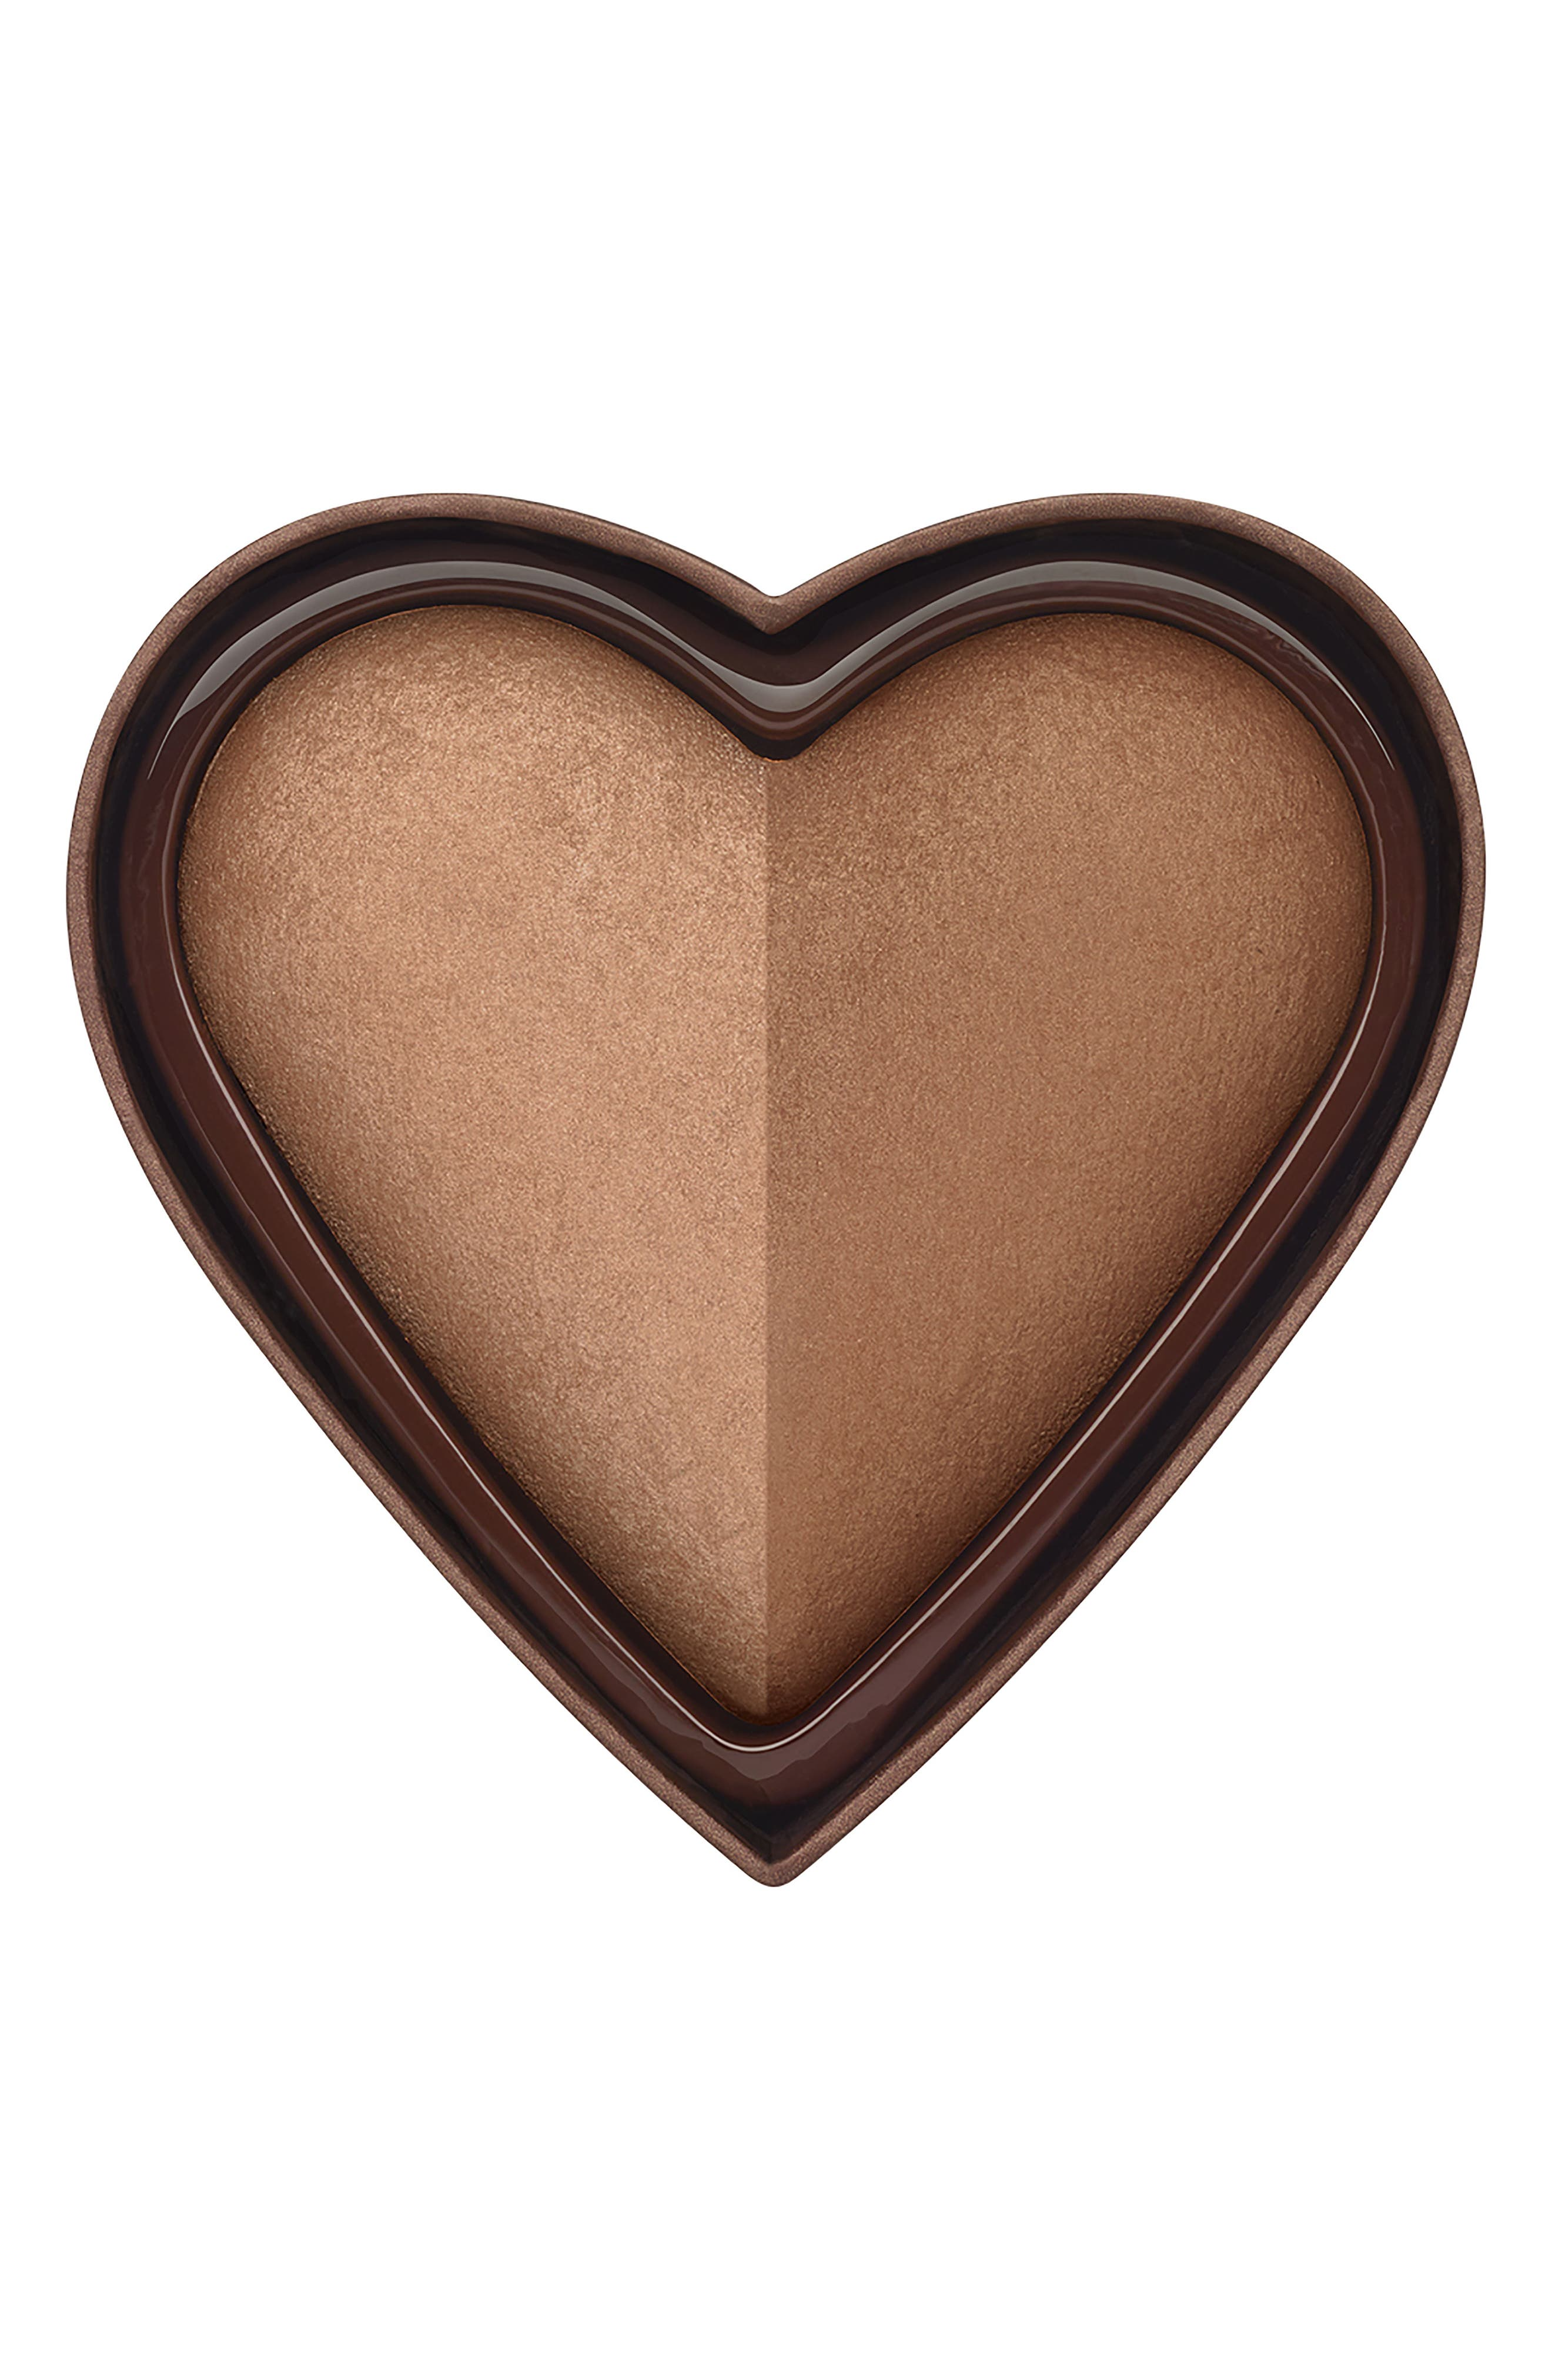 What it is: A baked, heart-shaped bronzer with two glowing shades that blend to create the perfect bronze for any skin tone. What it does: The multidimensional, radiant bronzer features two shades that can be used together or alone for a luminous, contoured bronze. Developed with easy application and a no-fail color palette in mind, Sweethearts takes the guesswork out of creating a sweet, romantic bronzed flush that\\\'s multidimensional and works